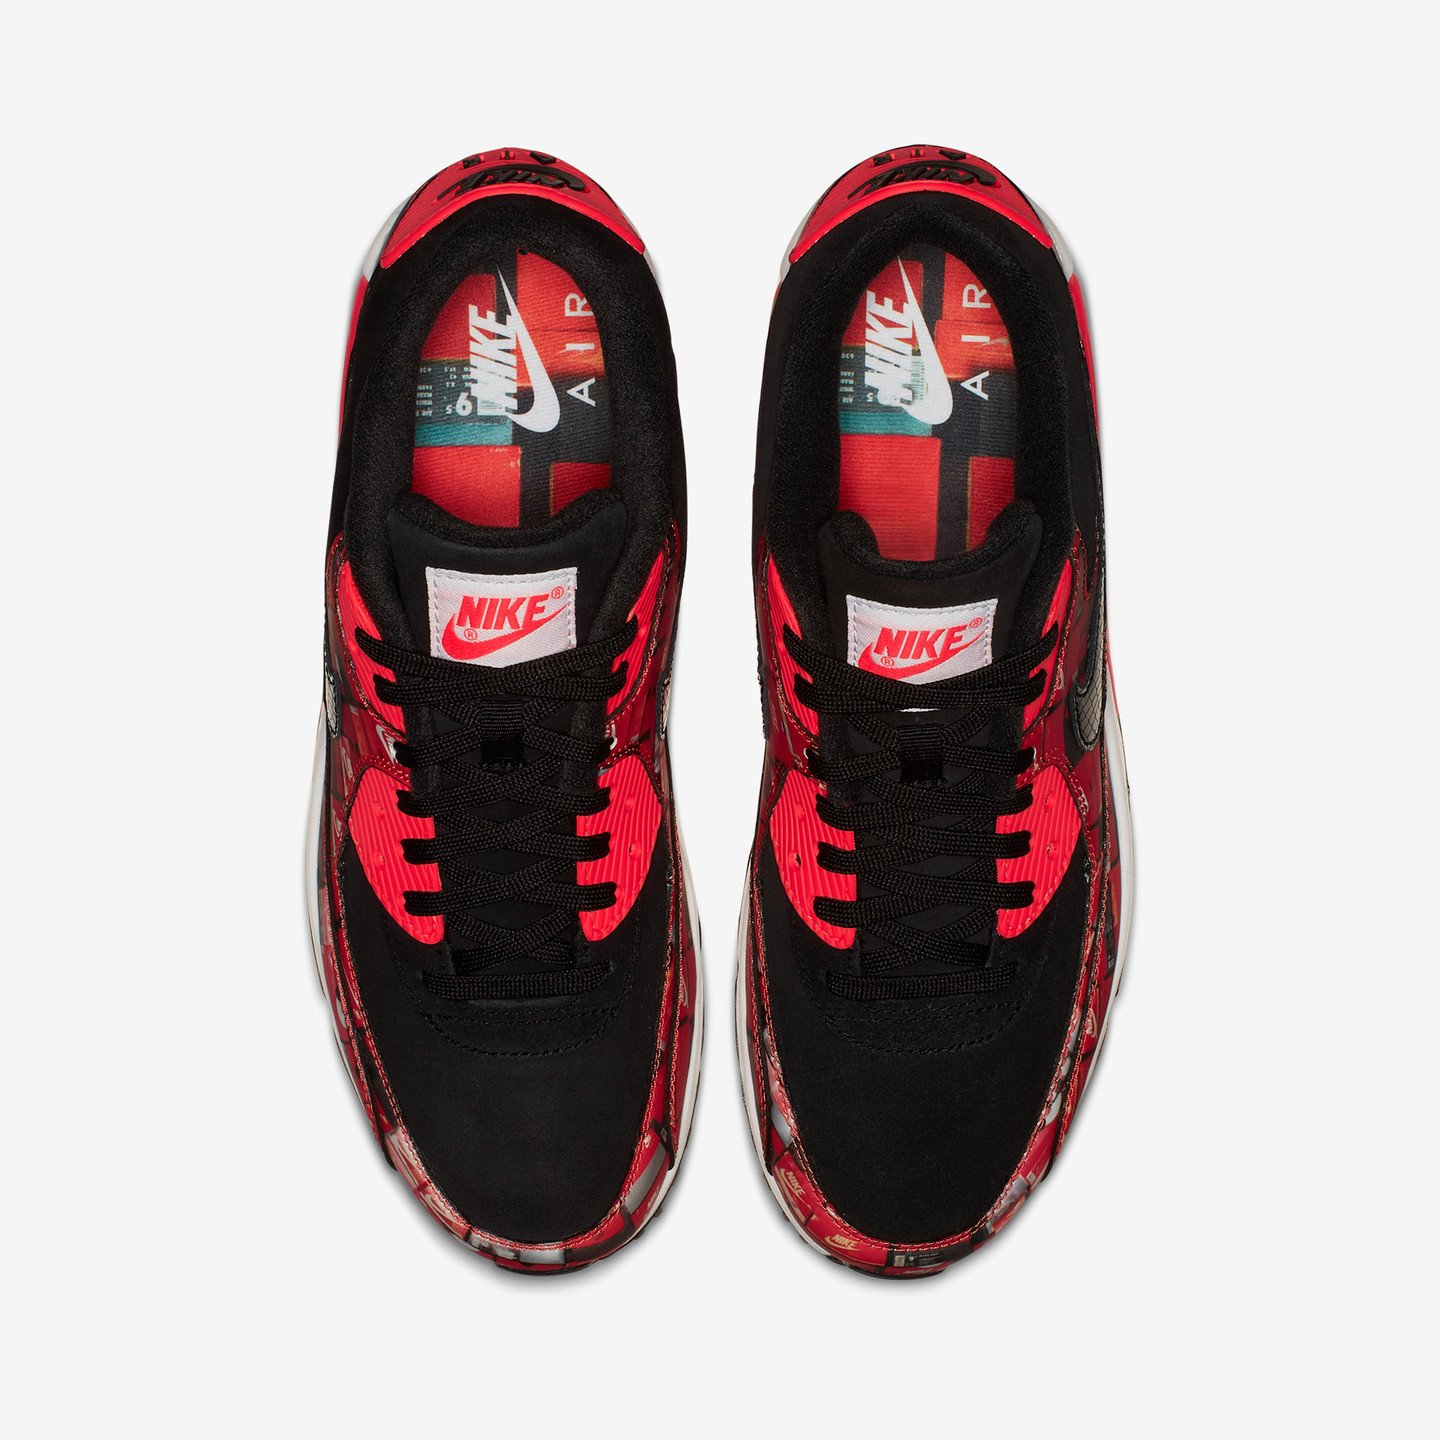 Nike Air Max 90 Print x Atmos 'We love Nike' Black / Bright Crimson / White AQ0926-001